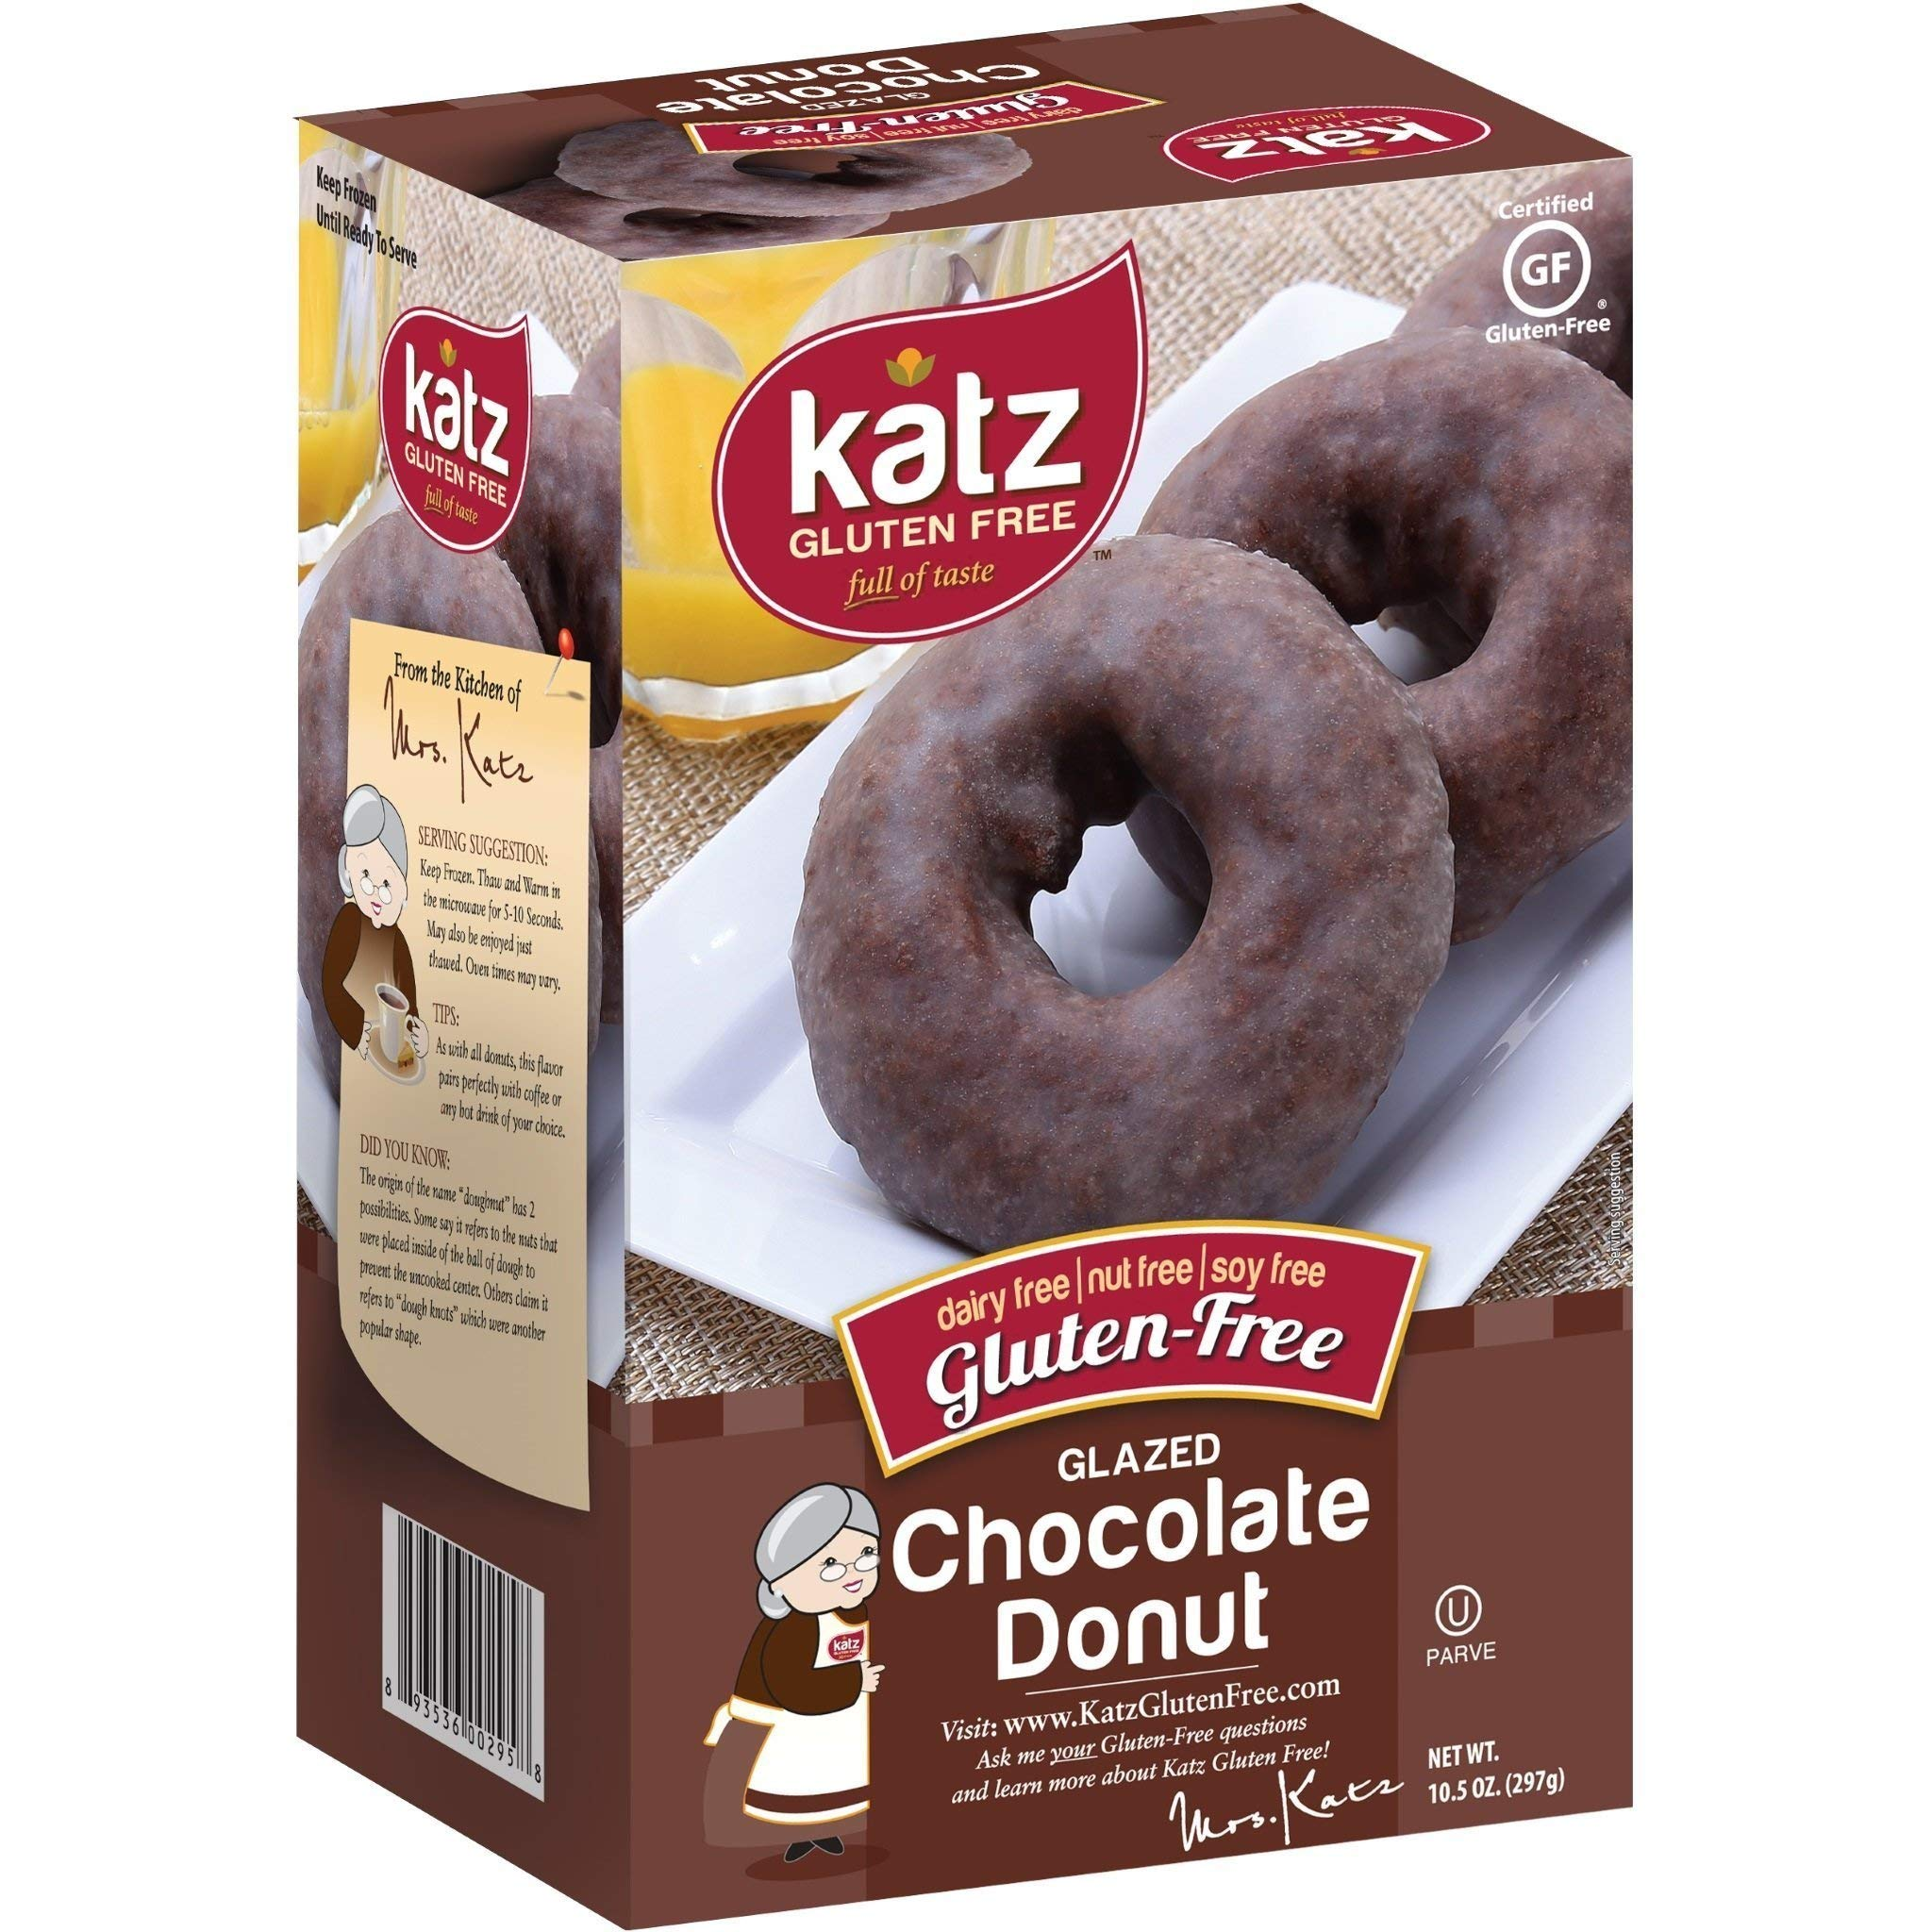 Katz Gluten Free Glazed Chocolate Donuts | Dairy, Nut, Soy and Gluten Free | Kosher (6 Packs of 6 Donuts, 10.5 Ounce Each) by Katz Gluten Free